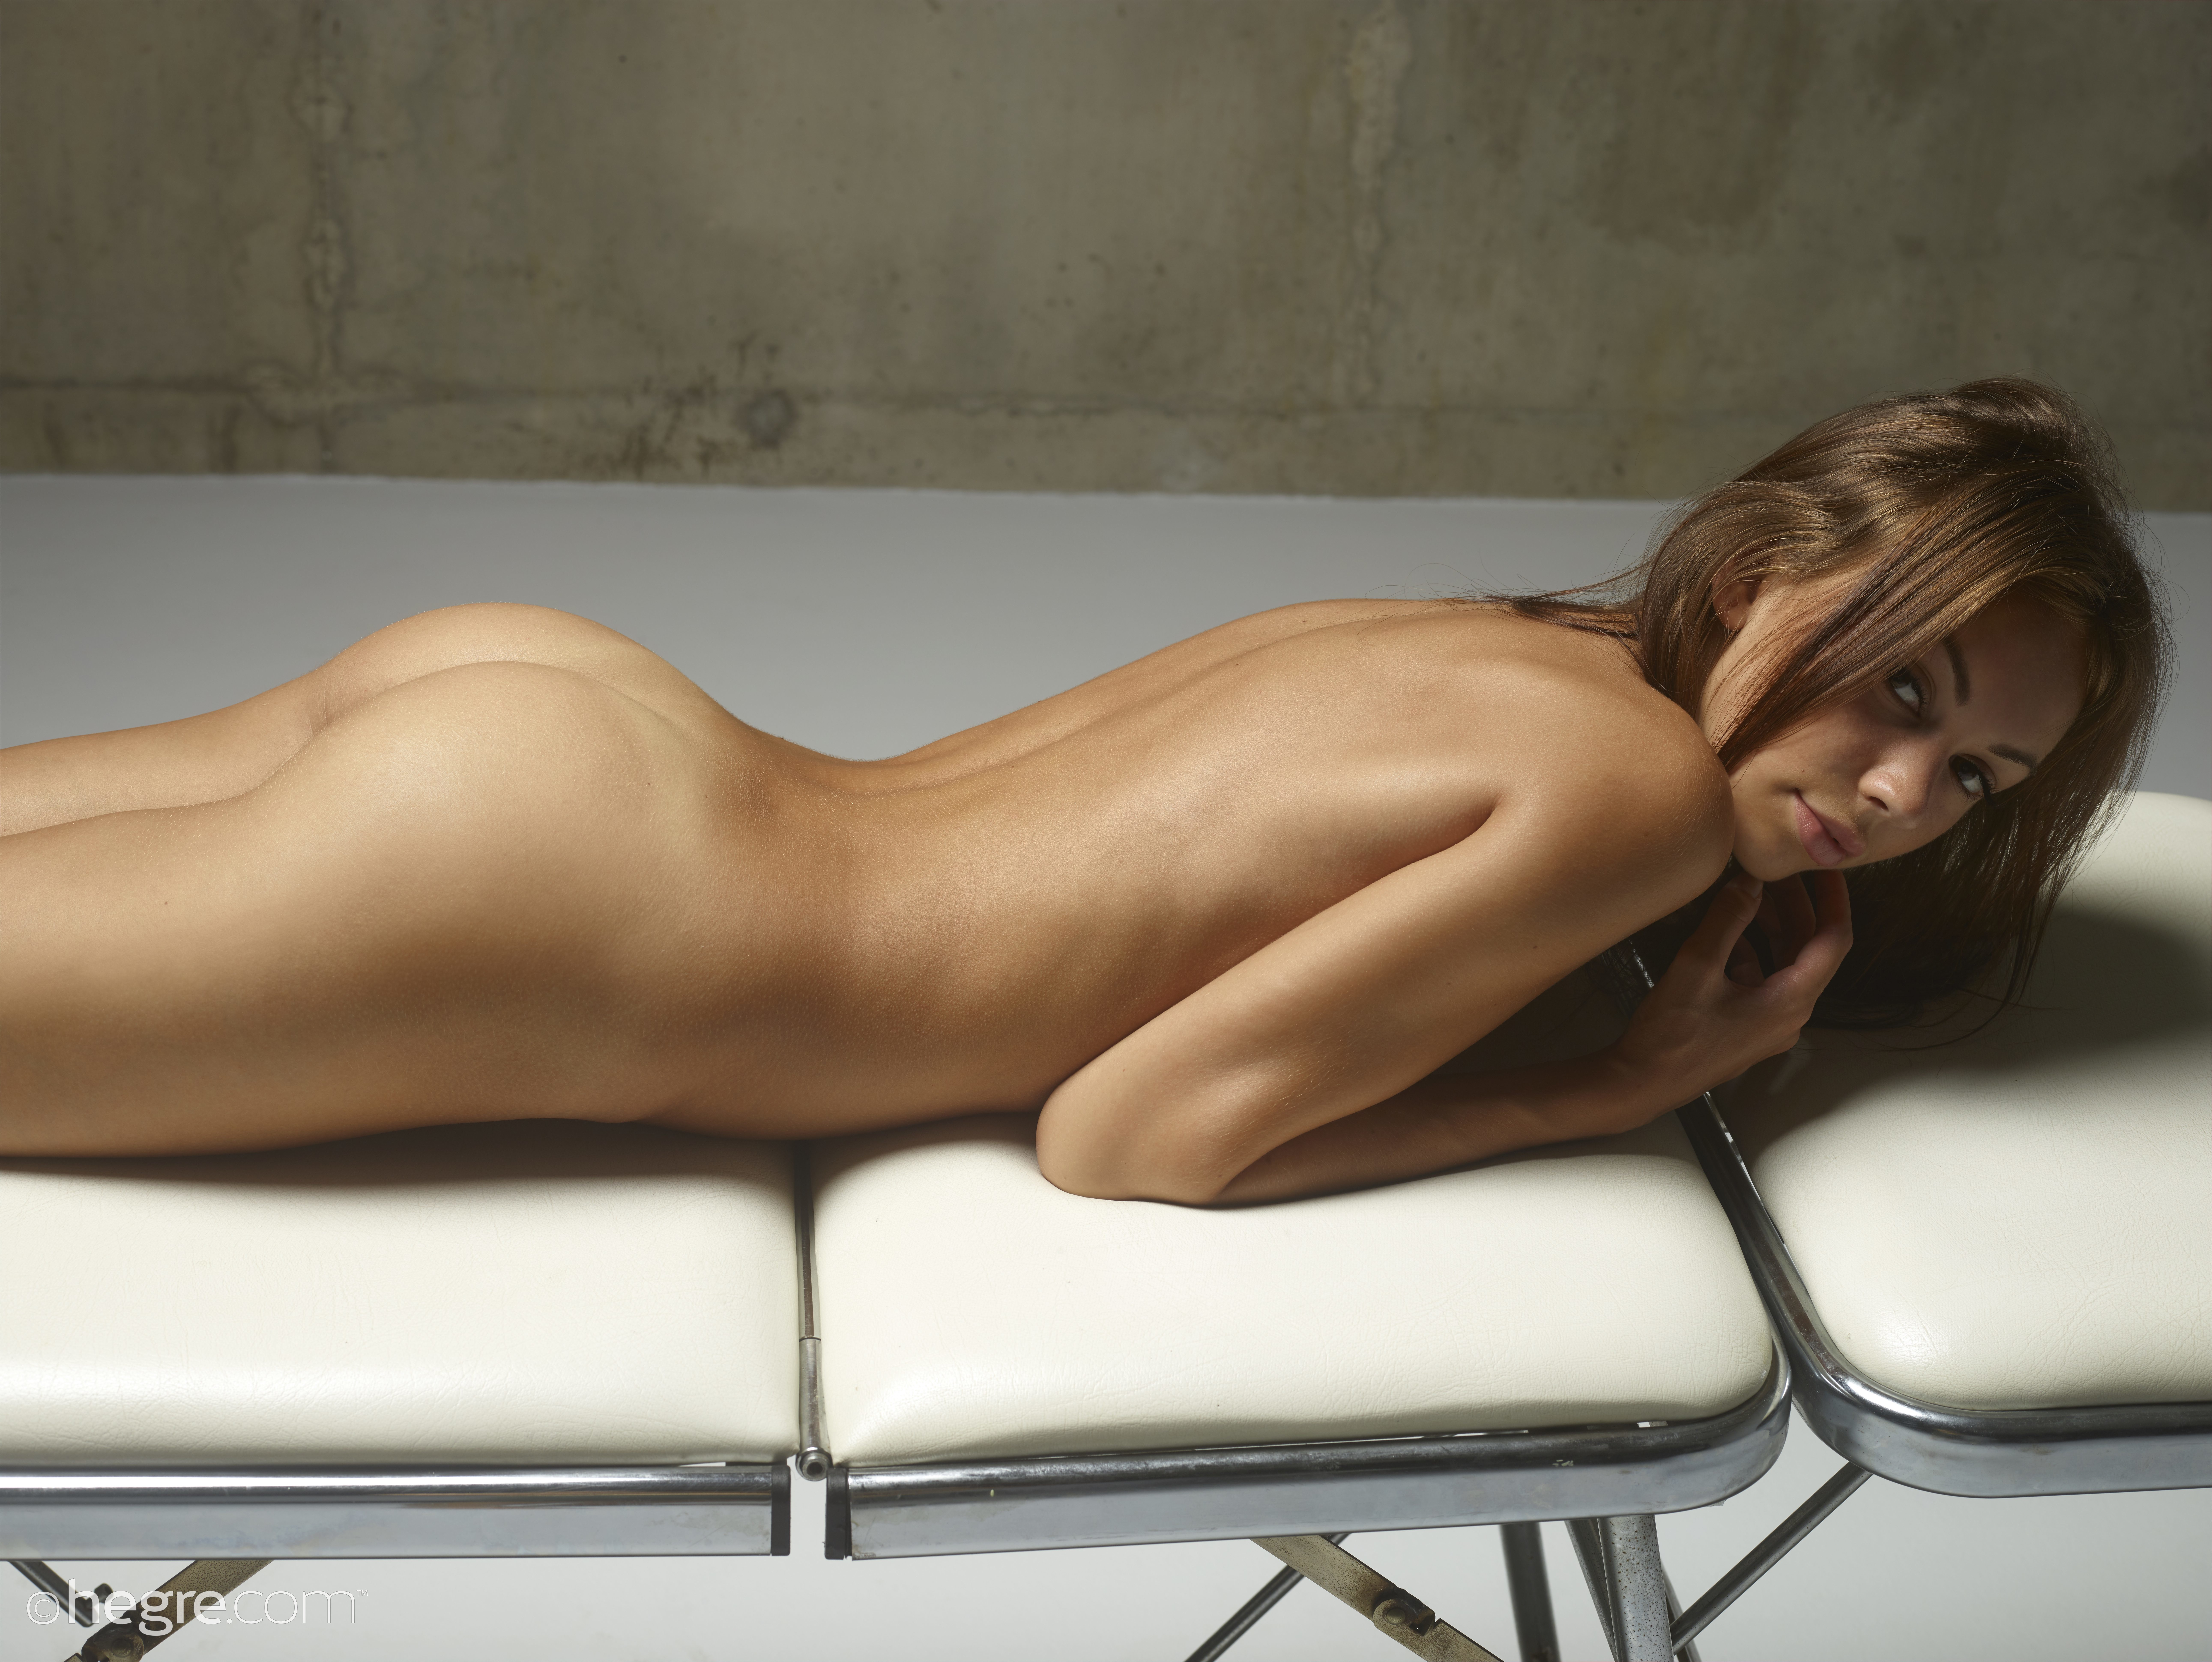 Karina Dazzling Exposed Nude Body On Massage Bed 608082 Slim And Appealing Teen Lay Down Comfortably